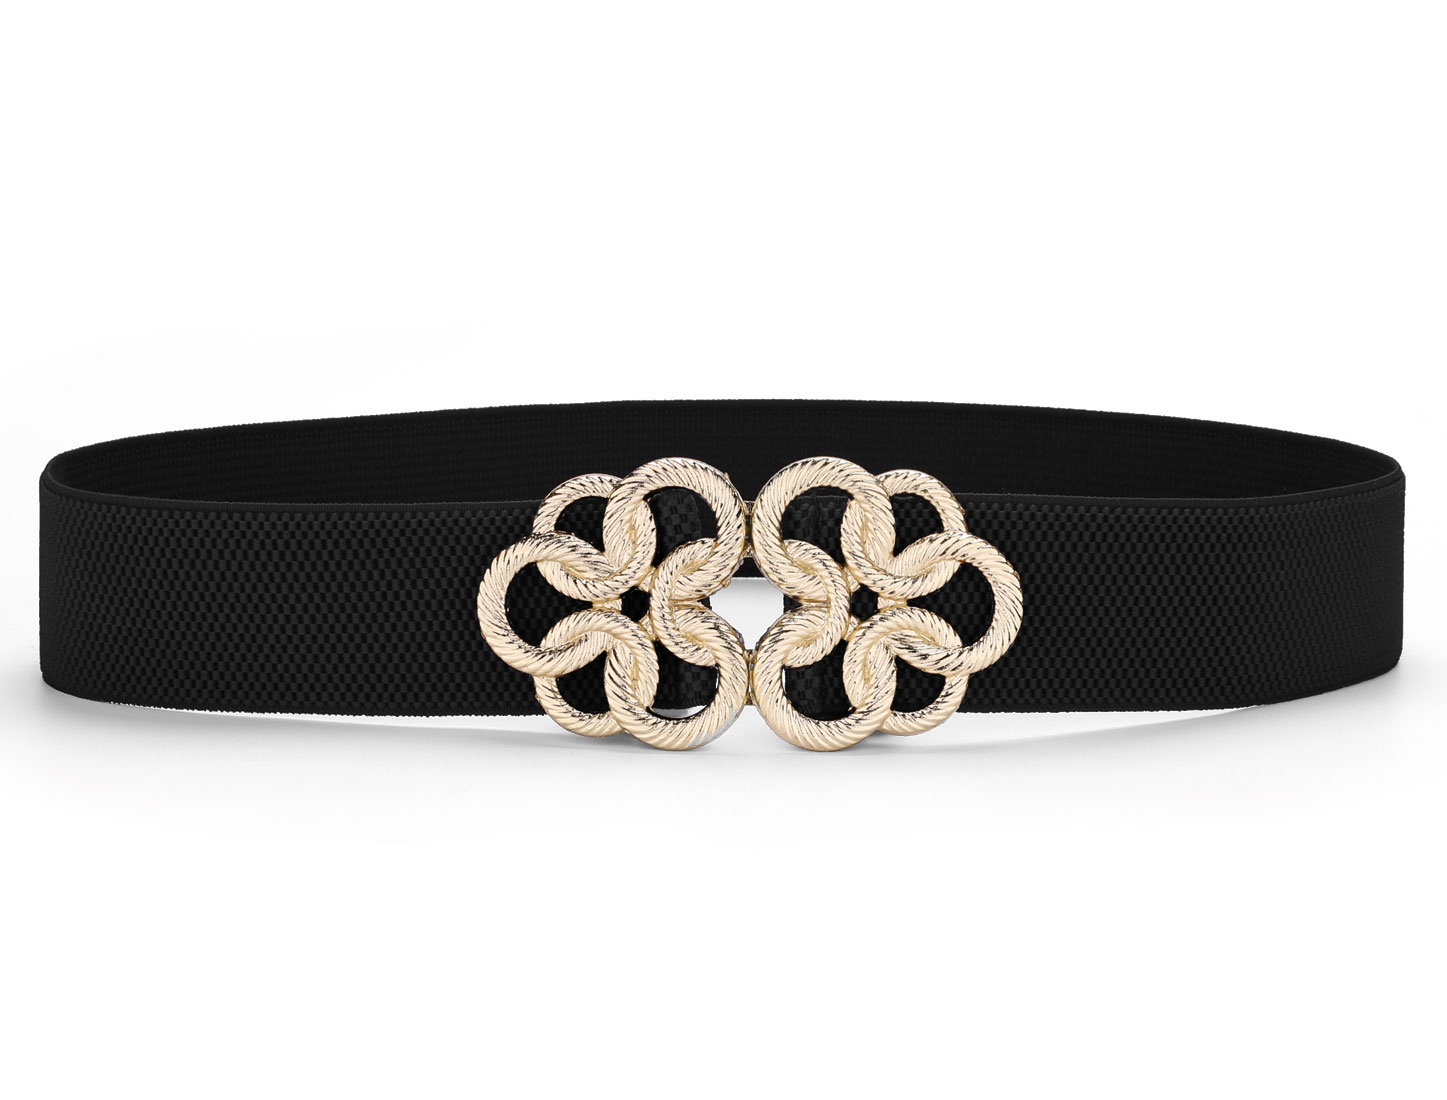 Metal Interlock Twisted Circle Flower Buckle Elastic Belt Black for Women Lady